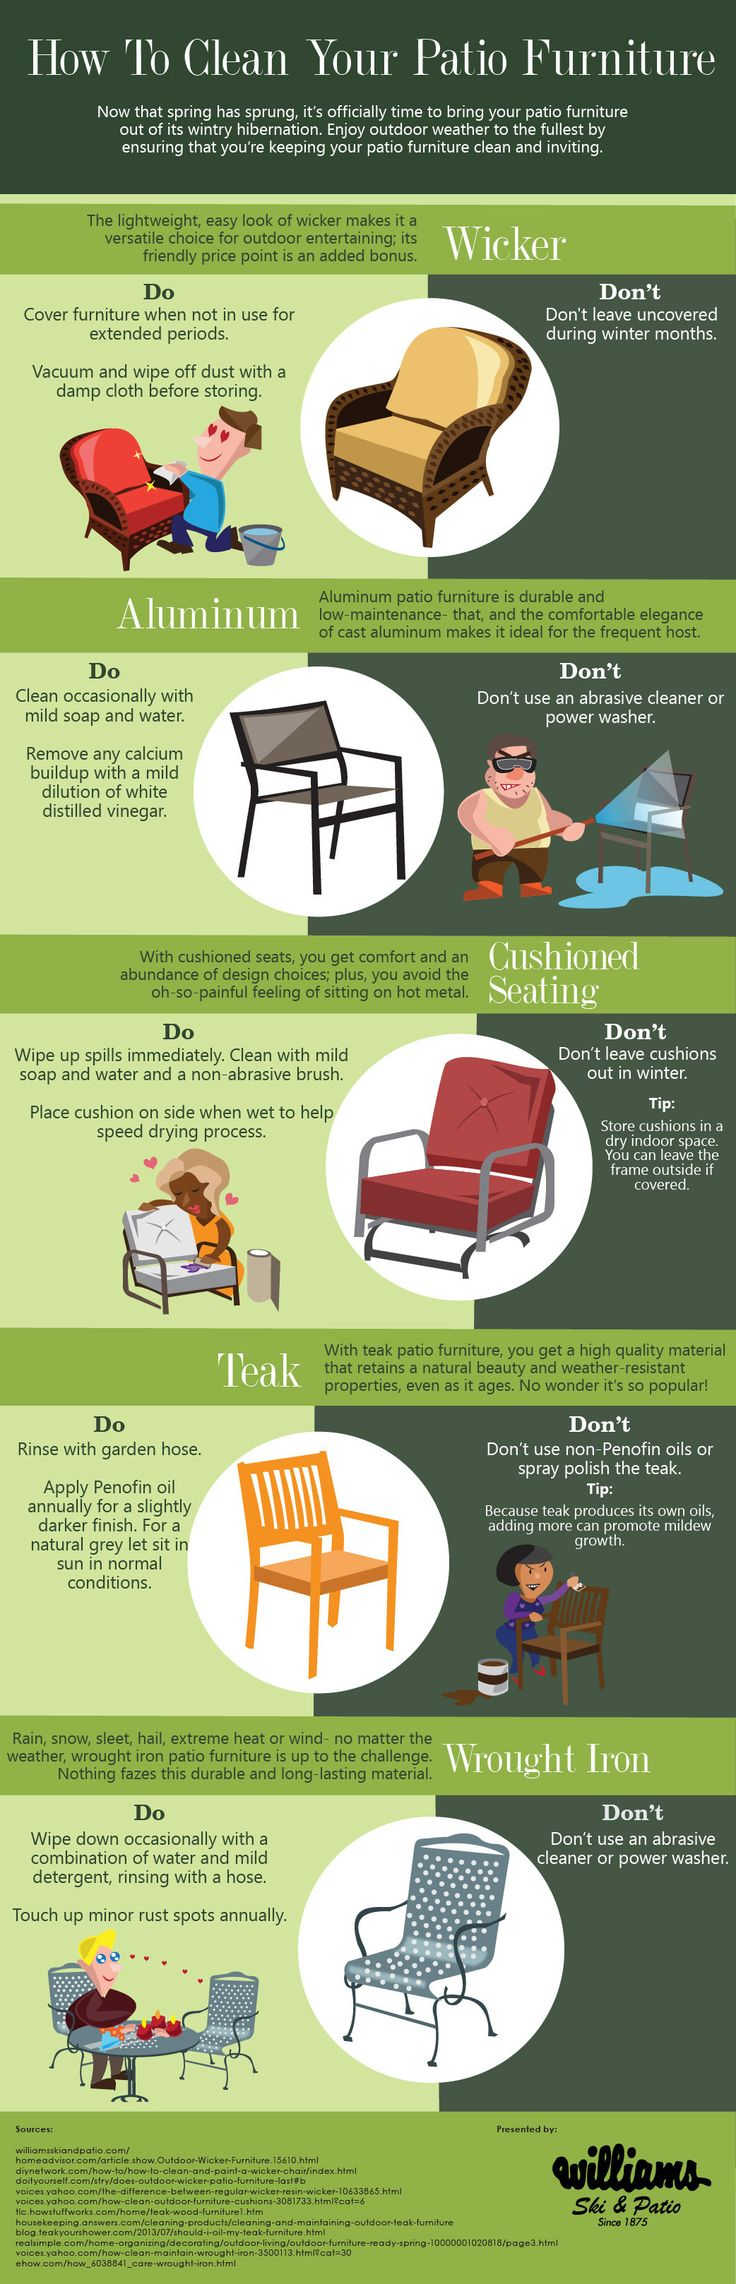 Infographic from +Williams Ski and Patio - How To Clean Your Patio Furniture @ CultureSouthWest.org.uk